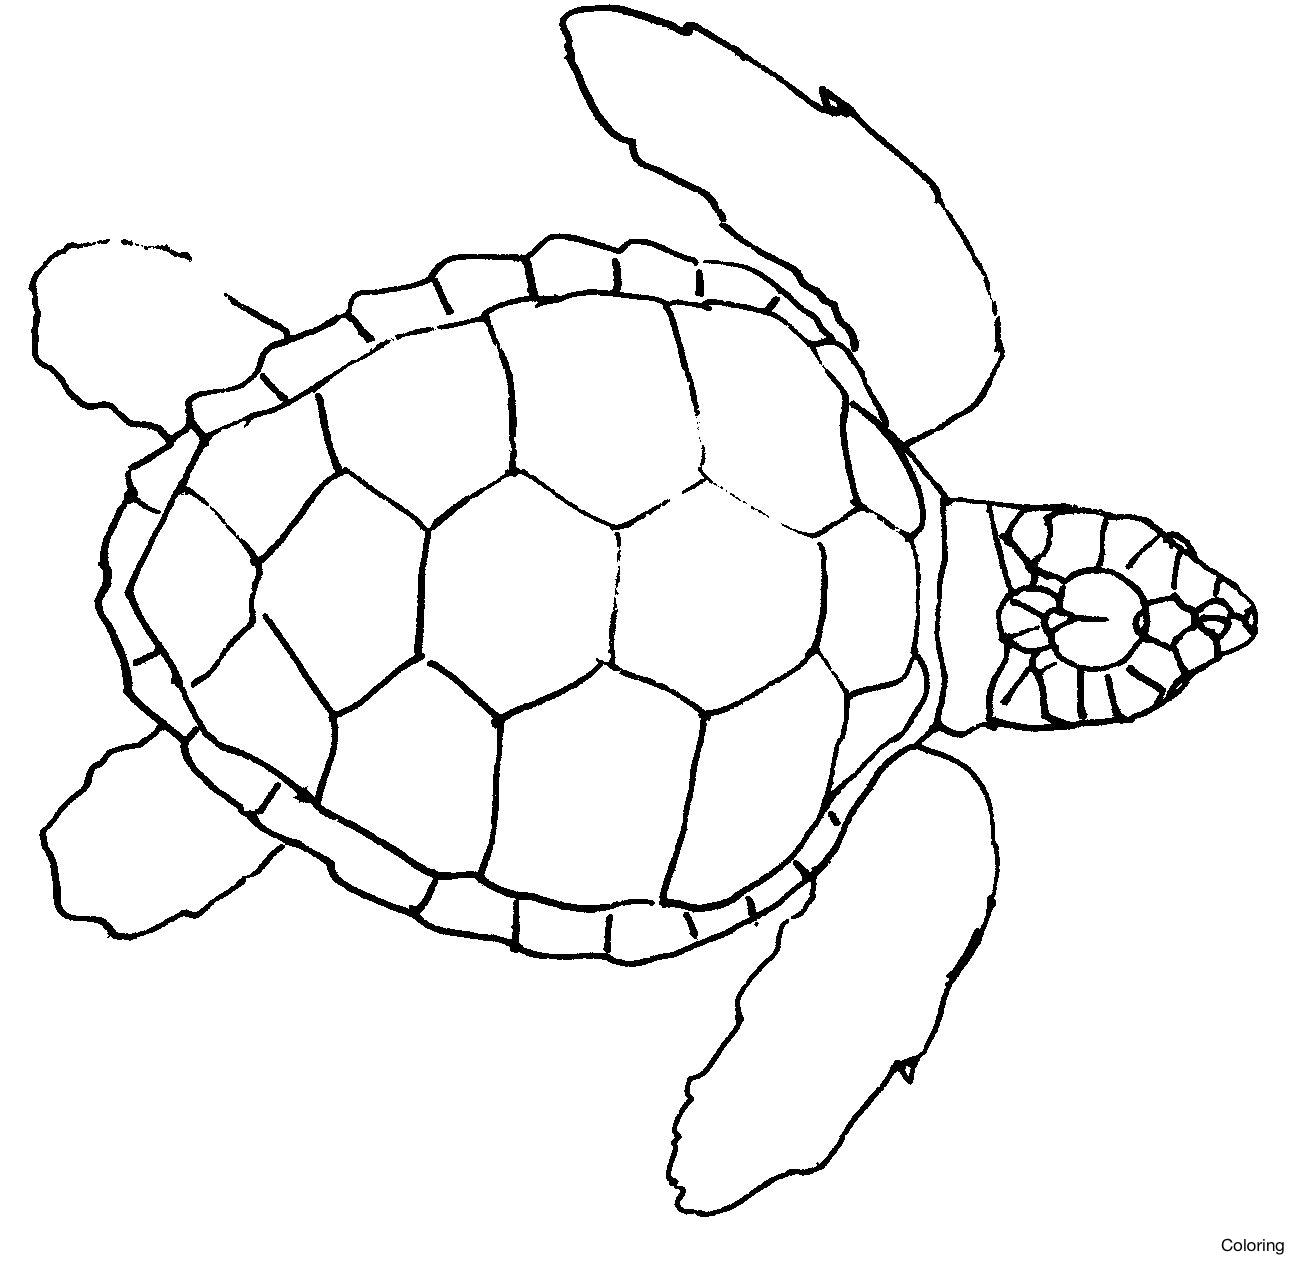 1295x1261 Lid5kj4et How To Draw A Sea Turtle Coloring Drawing Gallery 22f